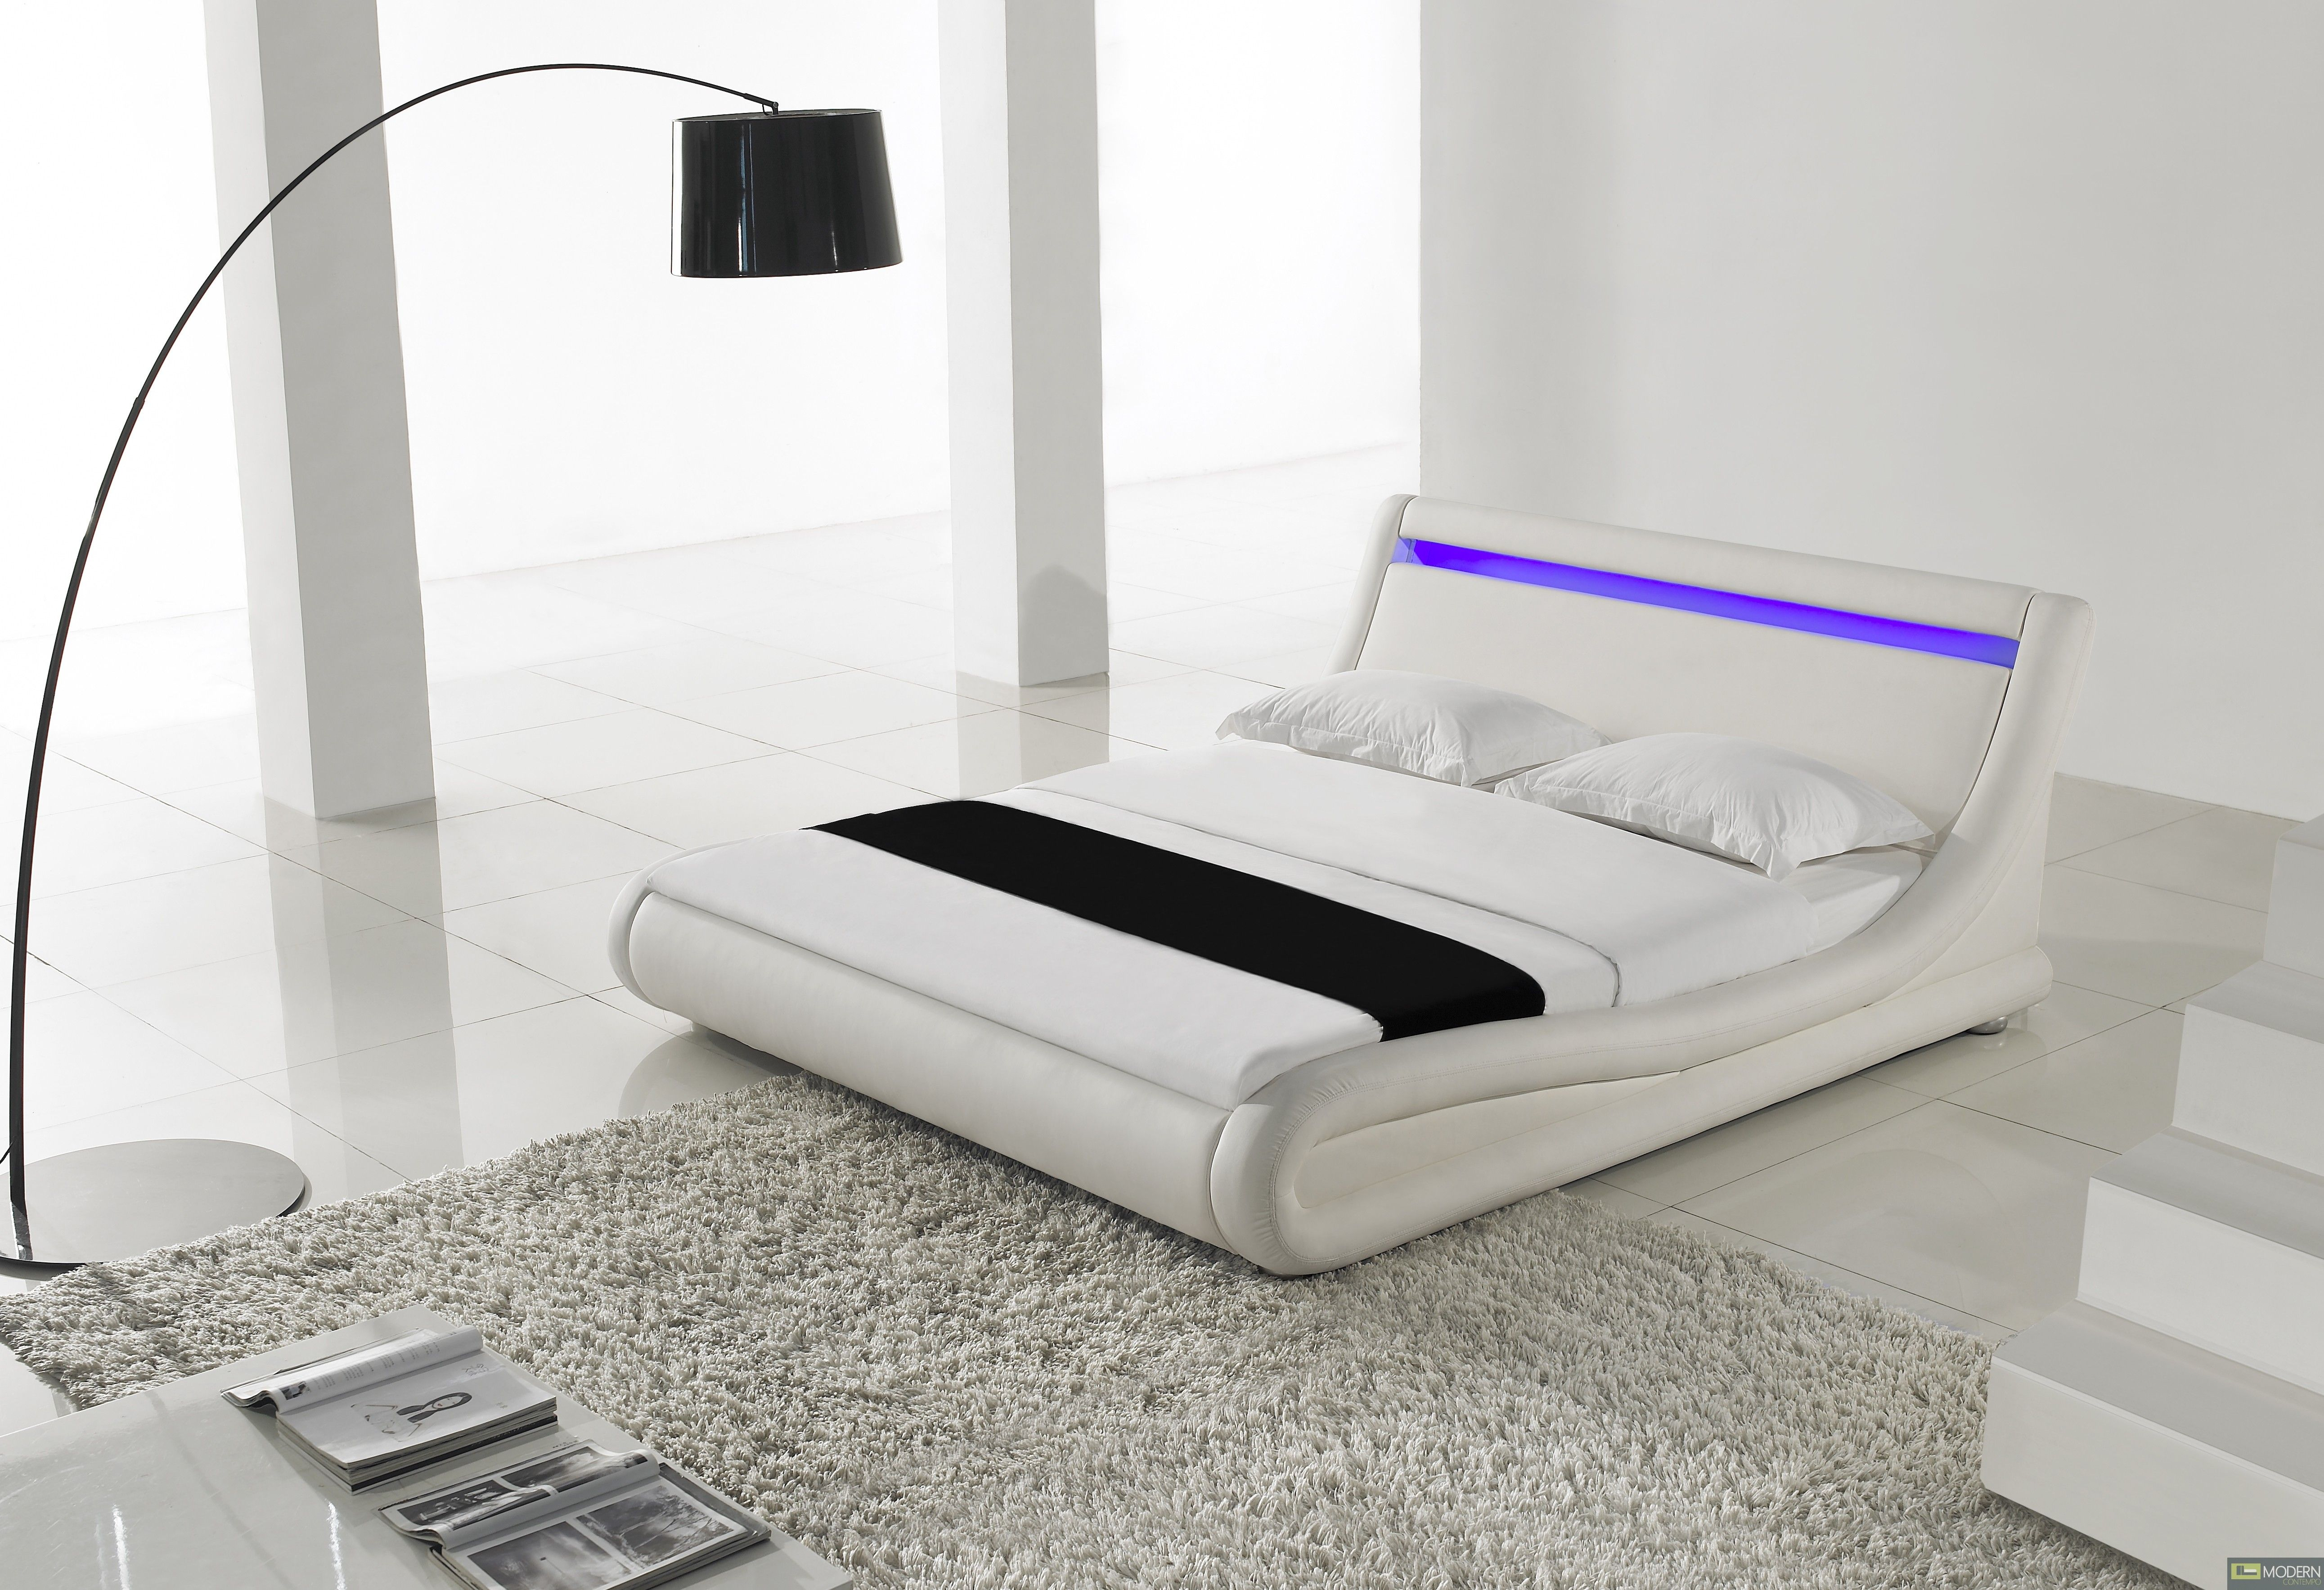 Modern white platform bed with bright blue LED accent